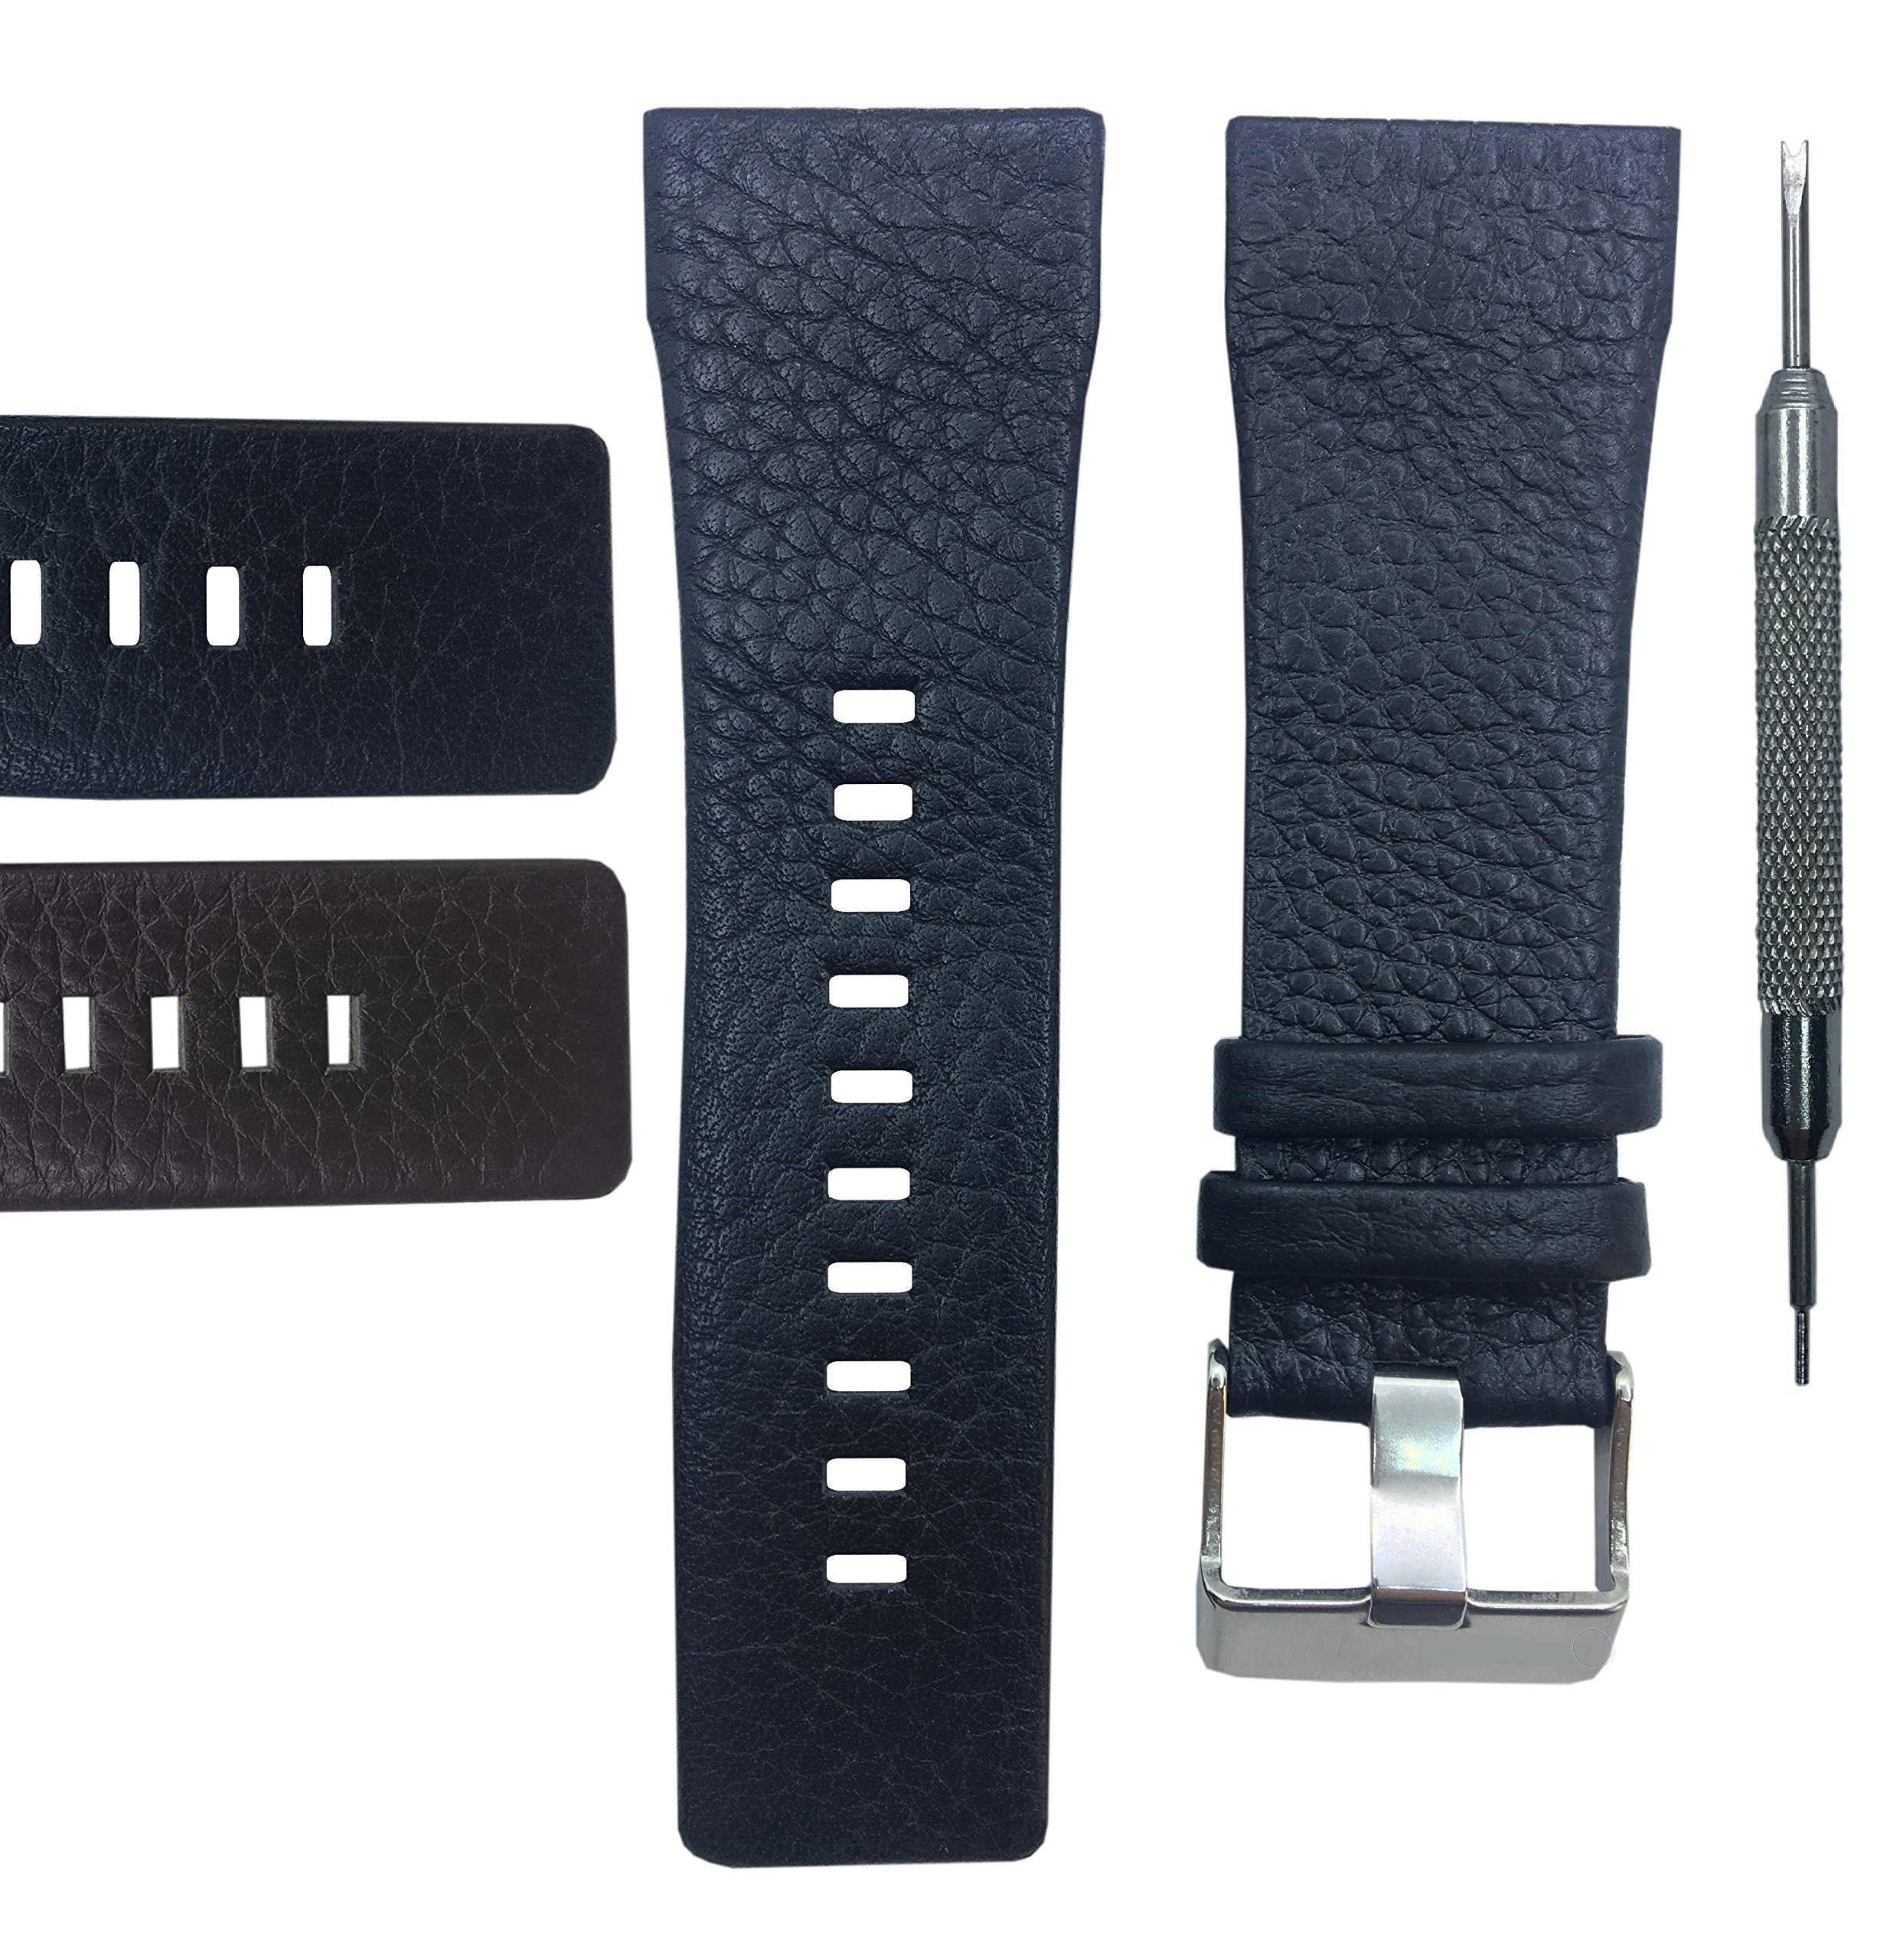 Genuine Leather Watch Band Strap 29mm for DZ1114 - Free Spring Bar Tool (Black)